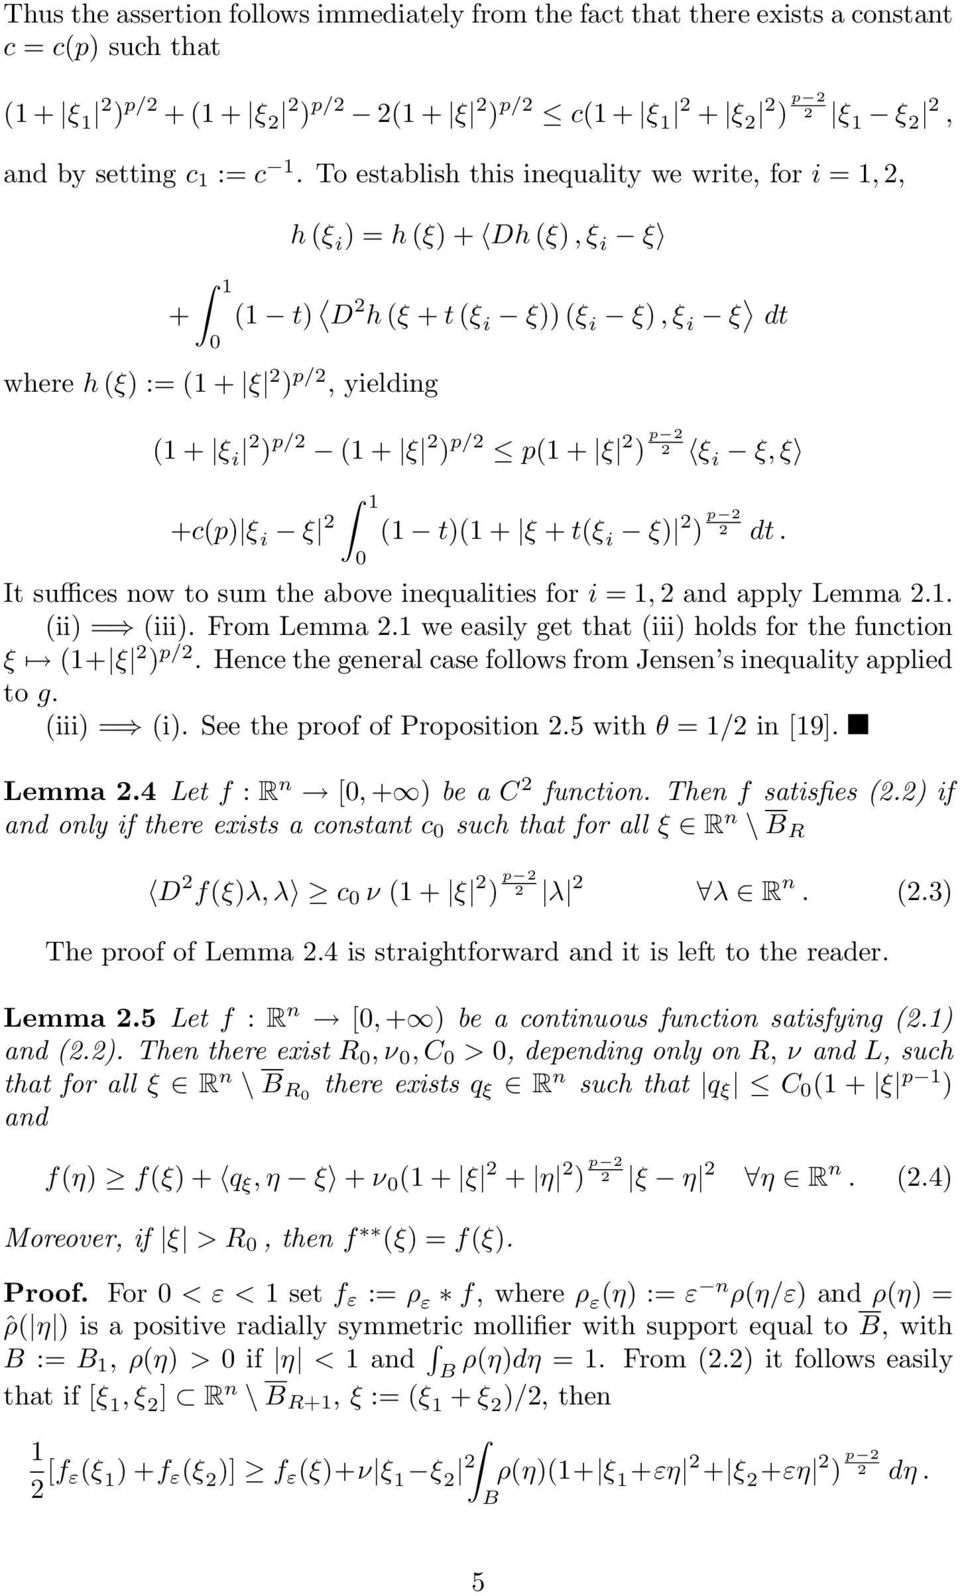 p(1 + ξ ) p ξi ξ, ξ +c(p) ξ i ξ 1 0 (1 t)(1 + ξ + t(ξ i ξ) ) p dt. It suffices now to sum the above inequalities for i = 1, and apply Lemma.1. (ii) = (iii). From Lemma.